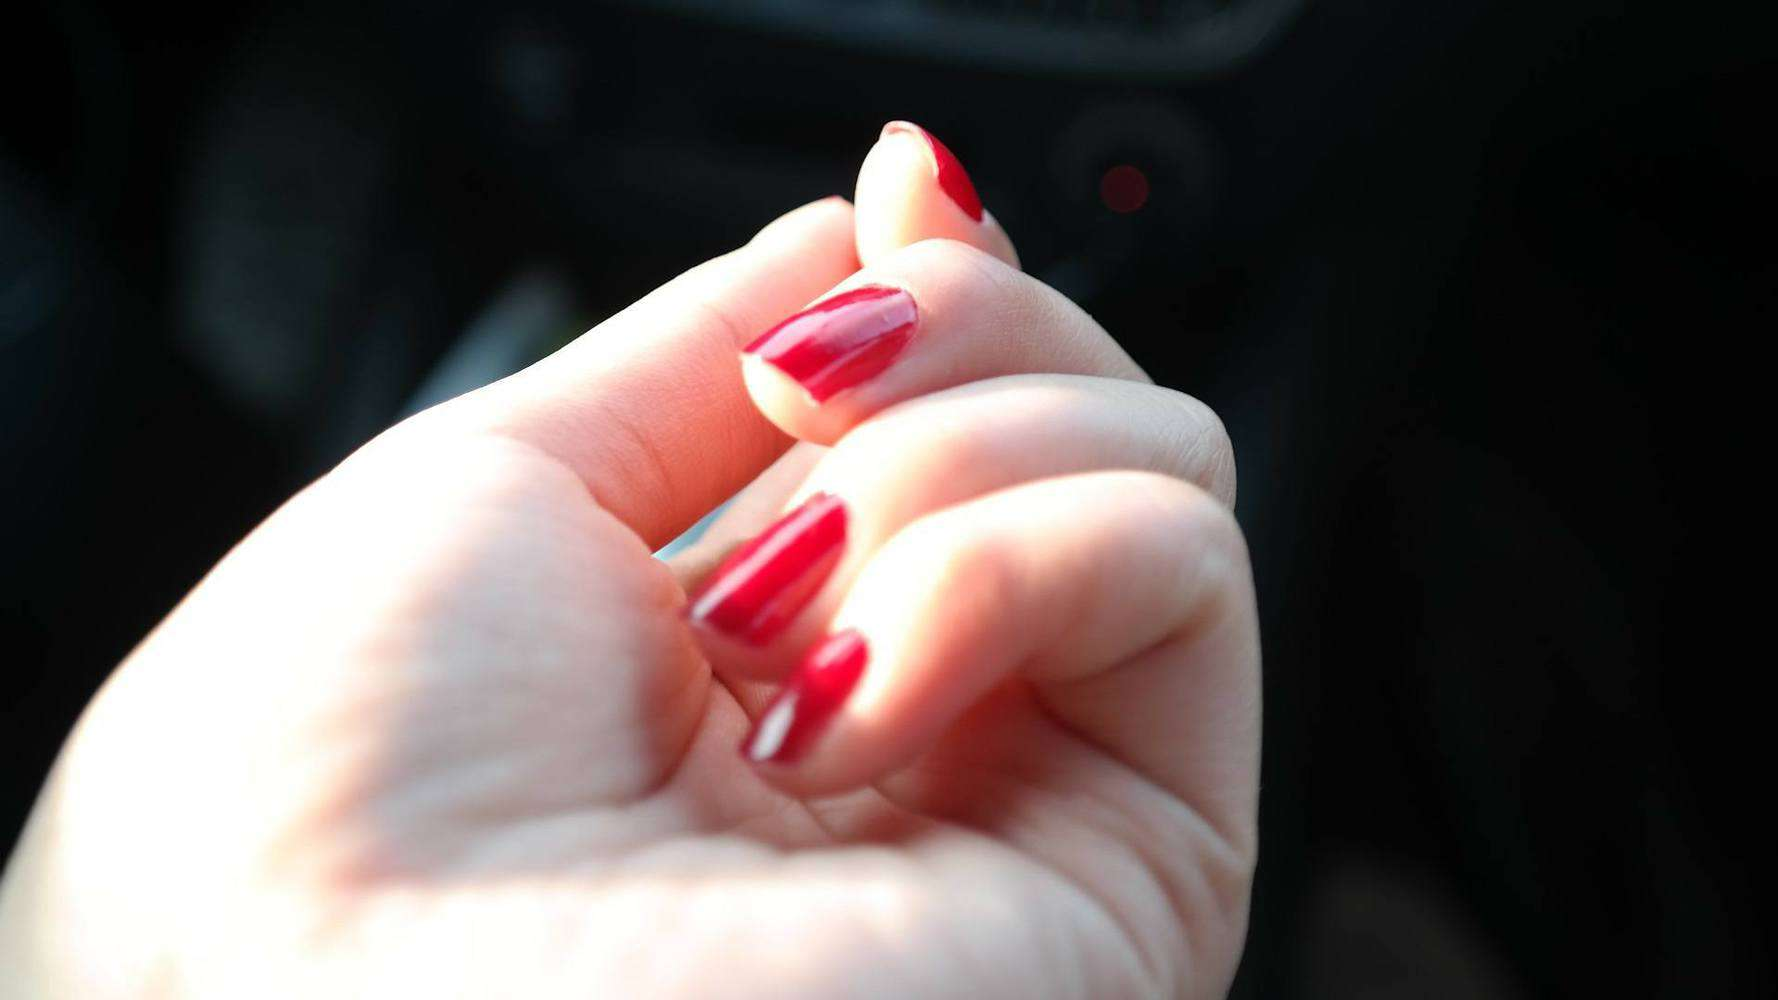 A person's nails with polish on them.